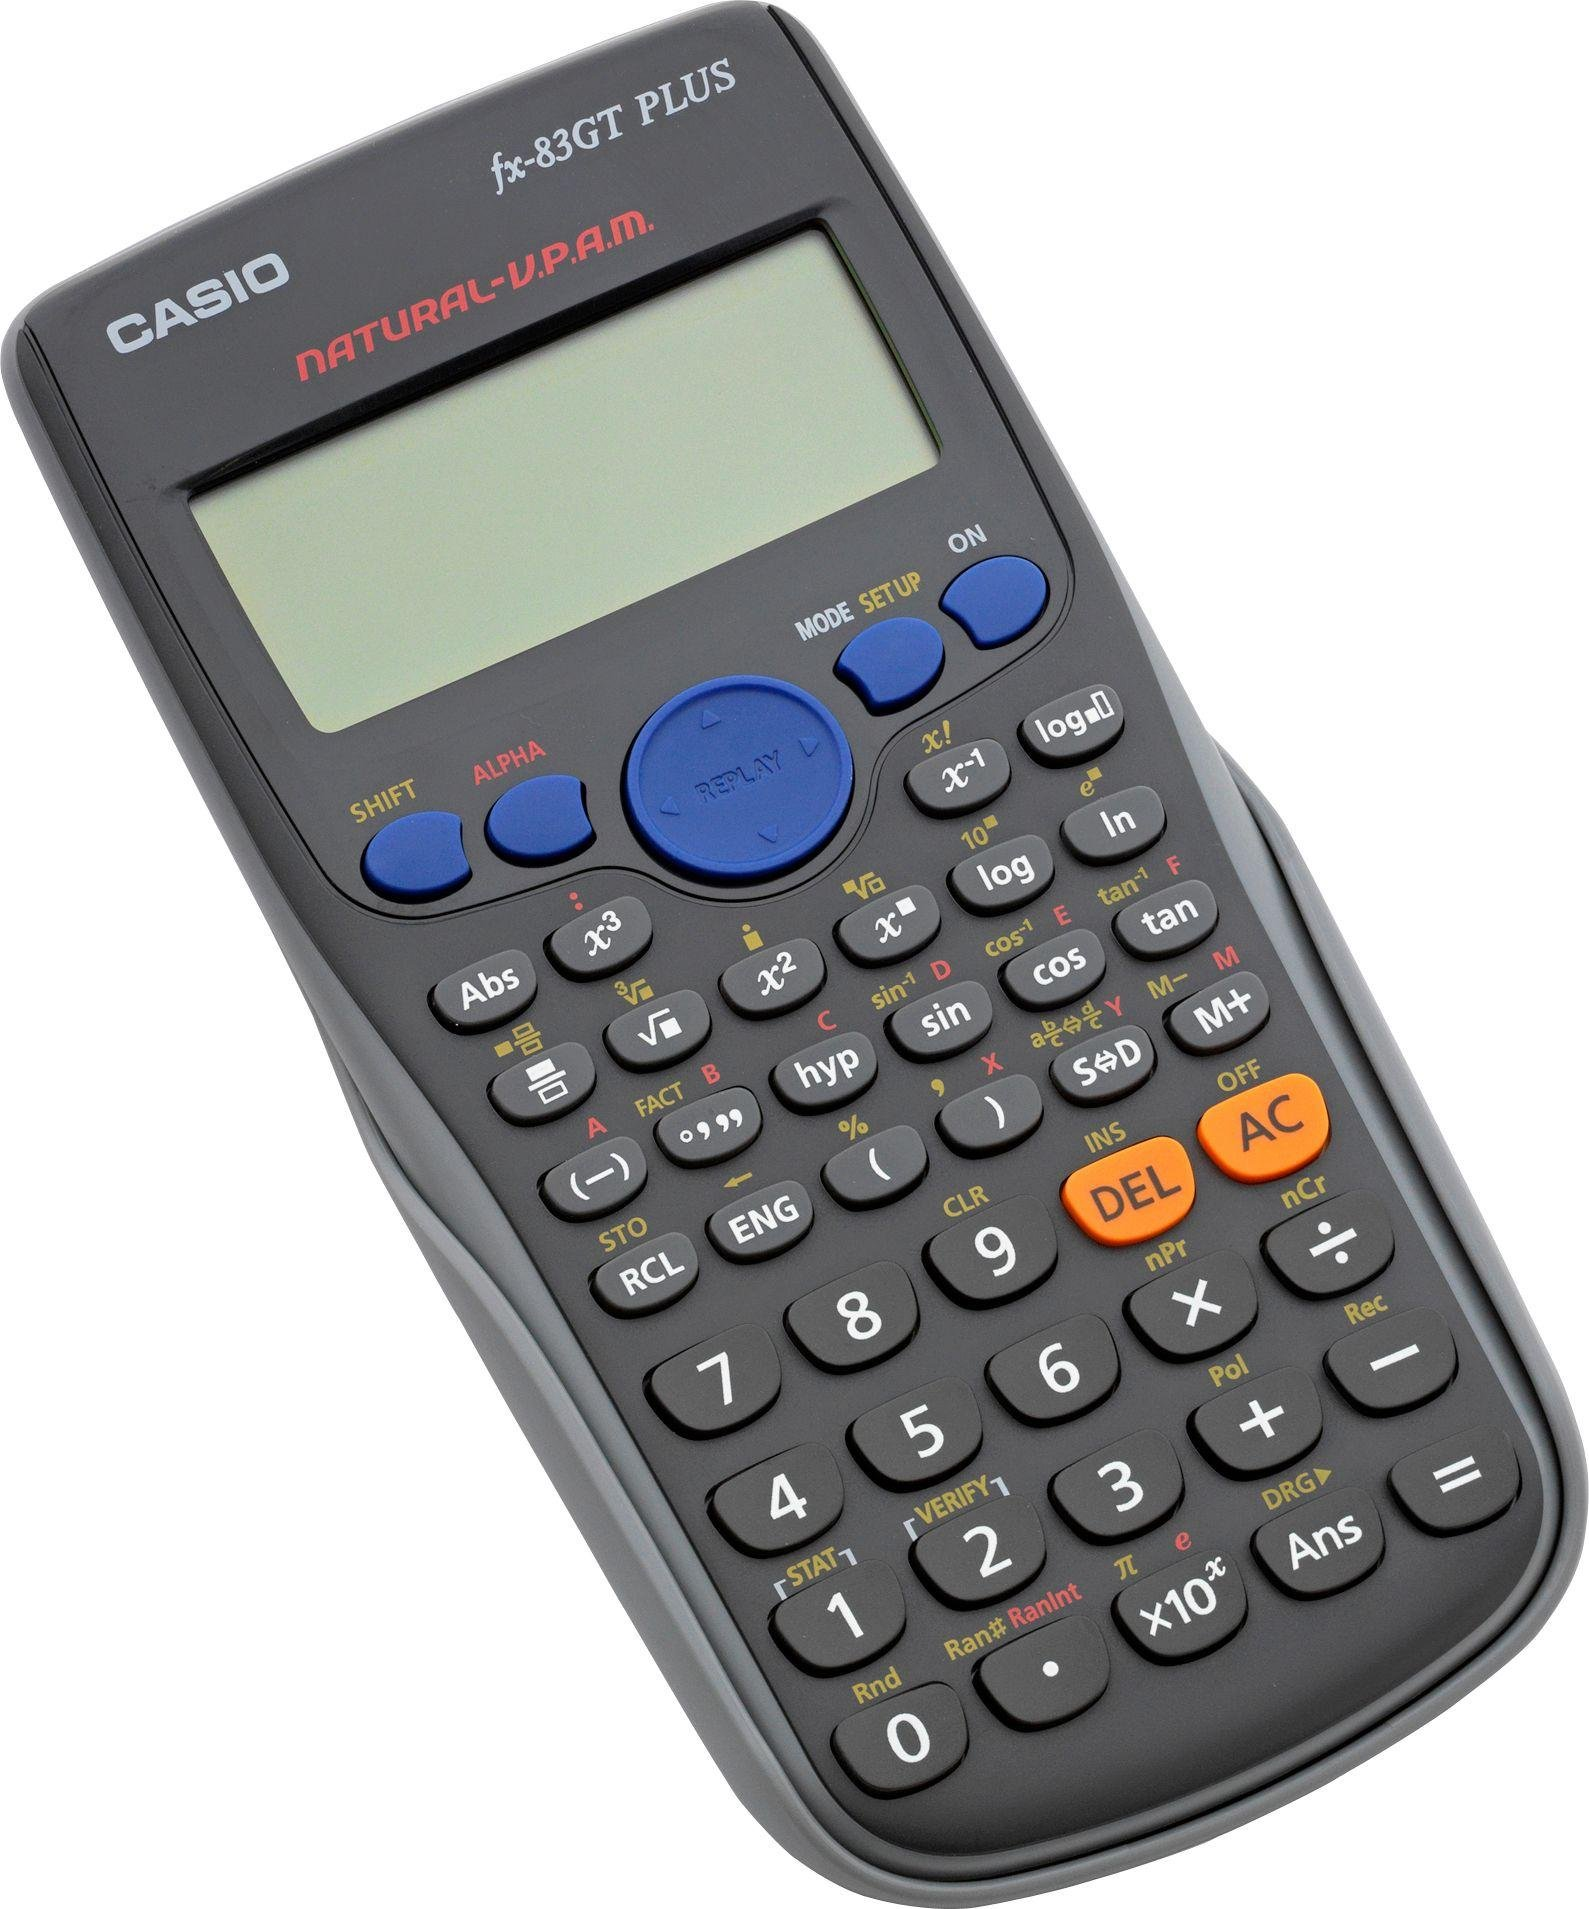 SALE On Casio FX-83GT Plus Battery Powered Scientific